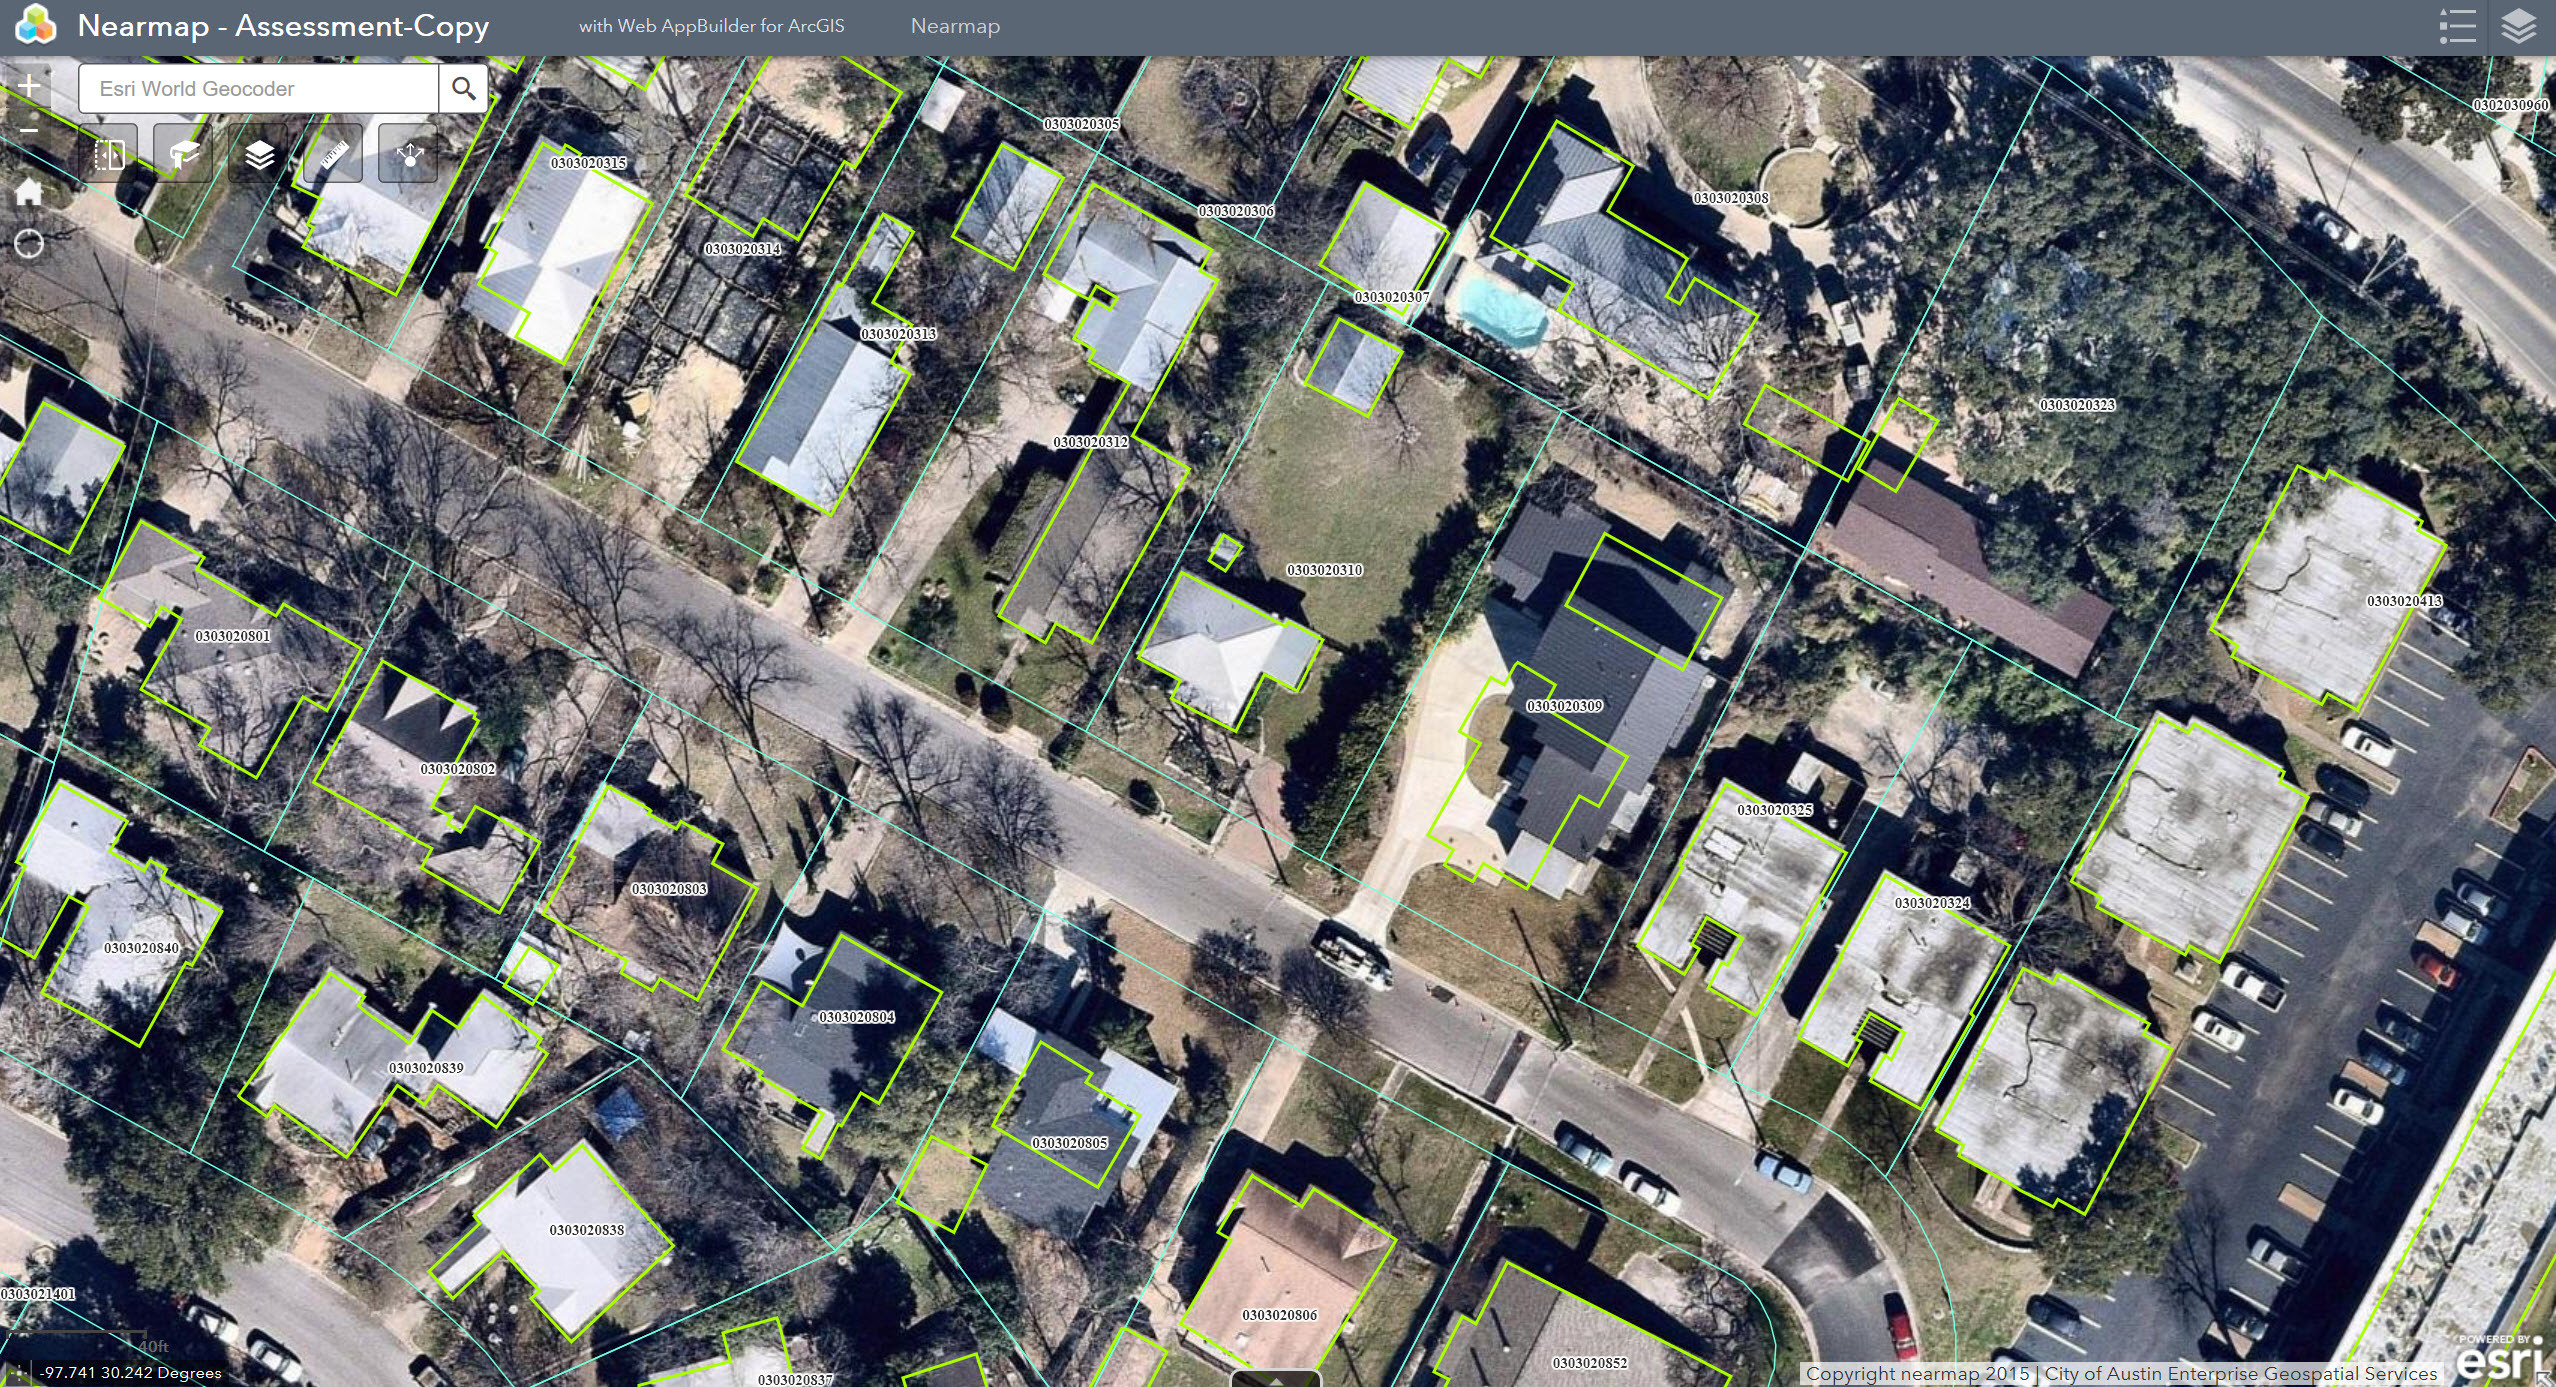 Nearmap high-resolution imagery inside ArcGIS online shows property boundaries and other ground features. (Photo: Business Wire)